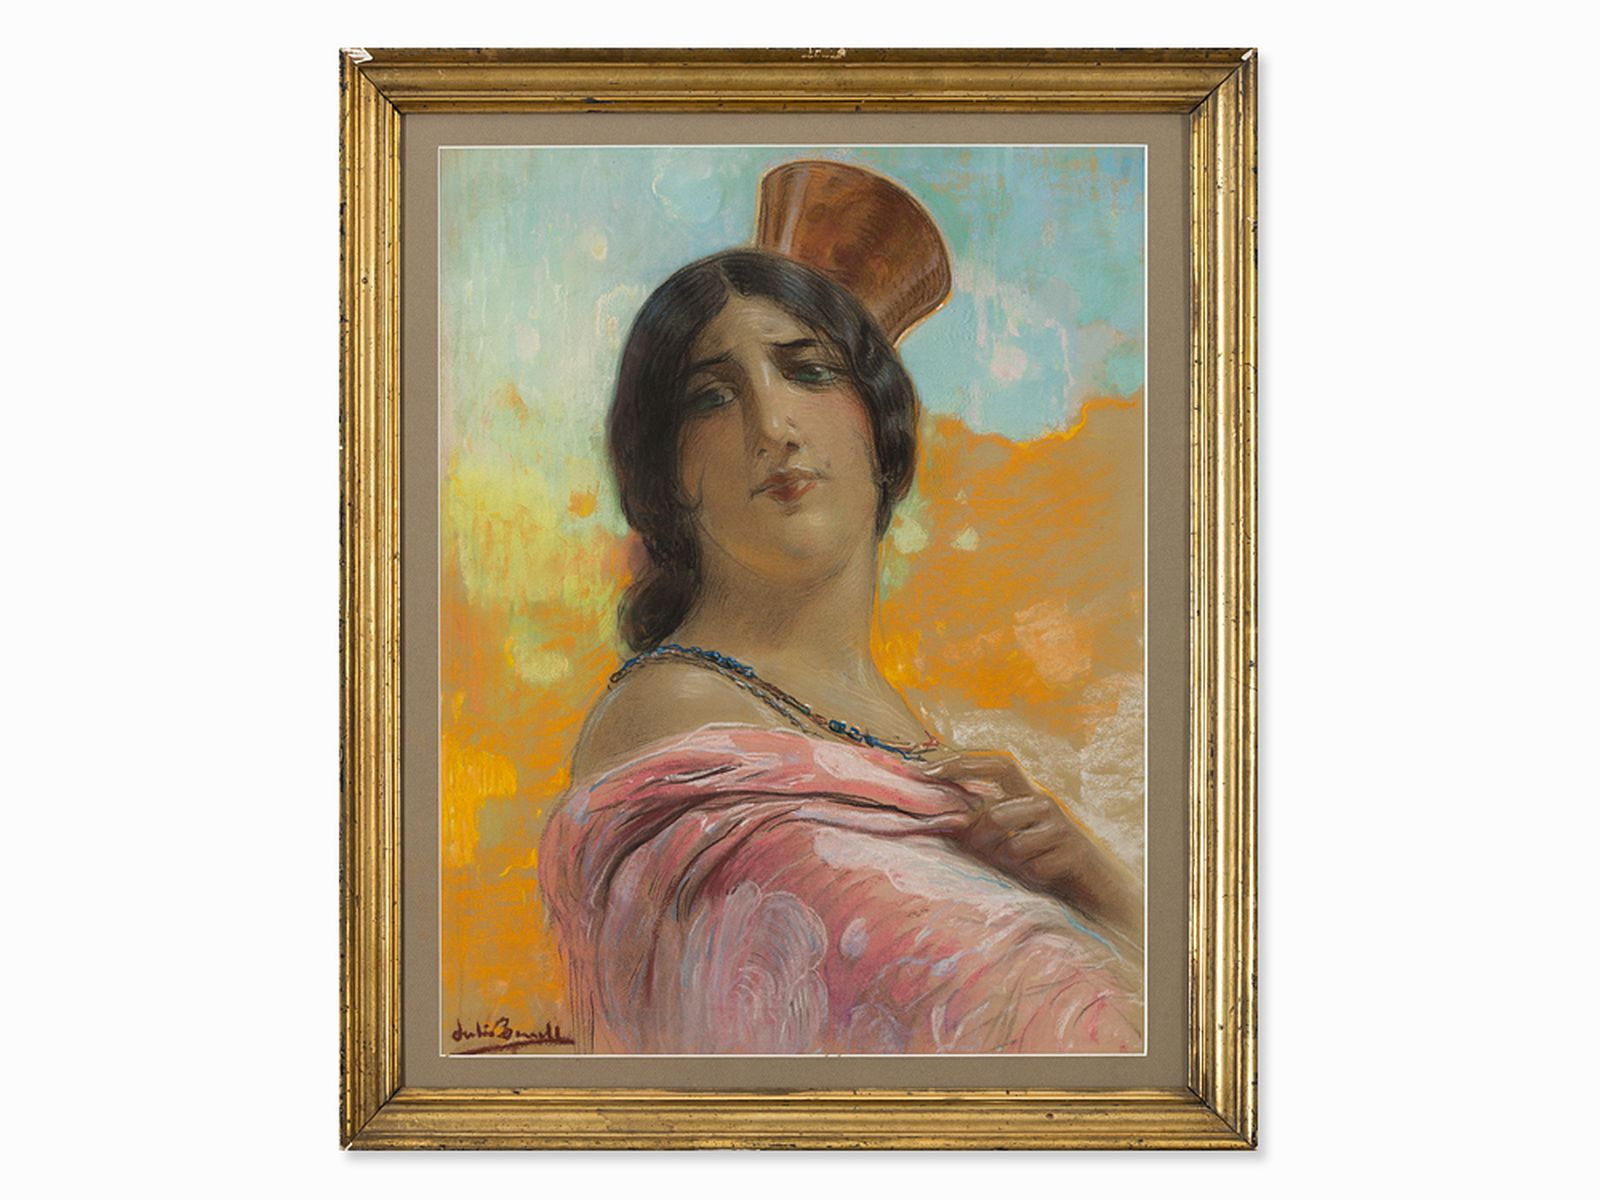 #66 Julio Borrell Pla (1877-1957), Young Spanish woman, pastel, 20th century. | Julio Borrell Pla (1877-1957), Junge Spanierin, Pastell, 20.Jh. Image